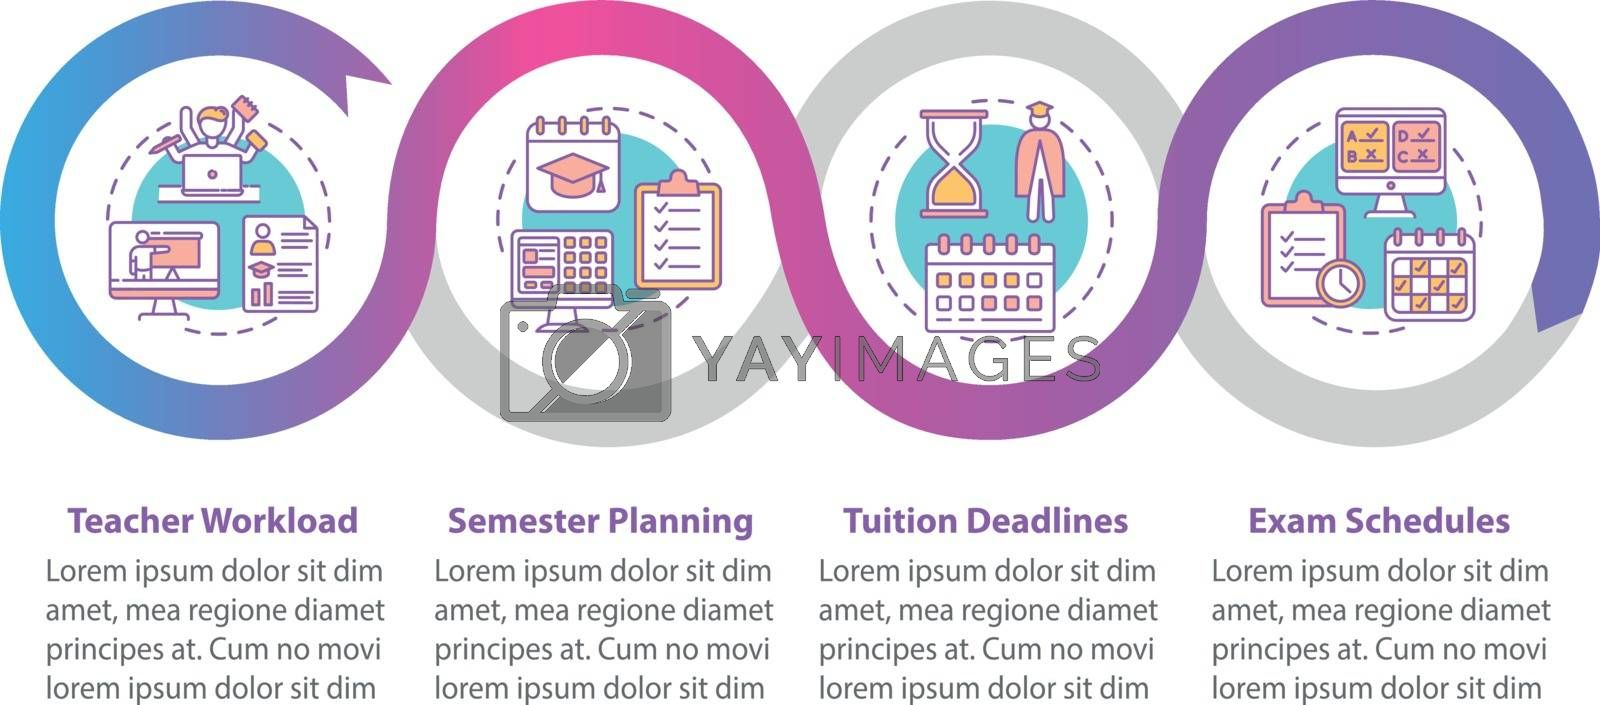 Distance learning elements vector infographic template. Semester planning. Presentation design elements. Data visualization with 4 steps. Process timeline chart. Workflow layout with linear icons